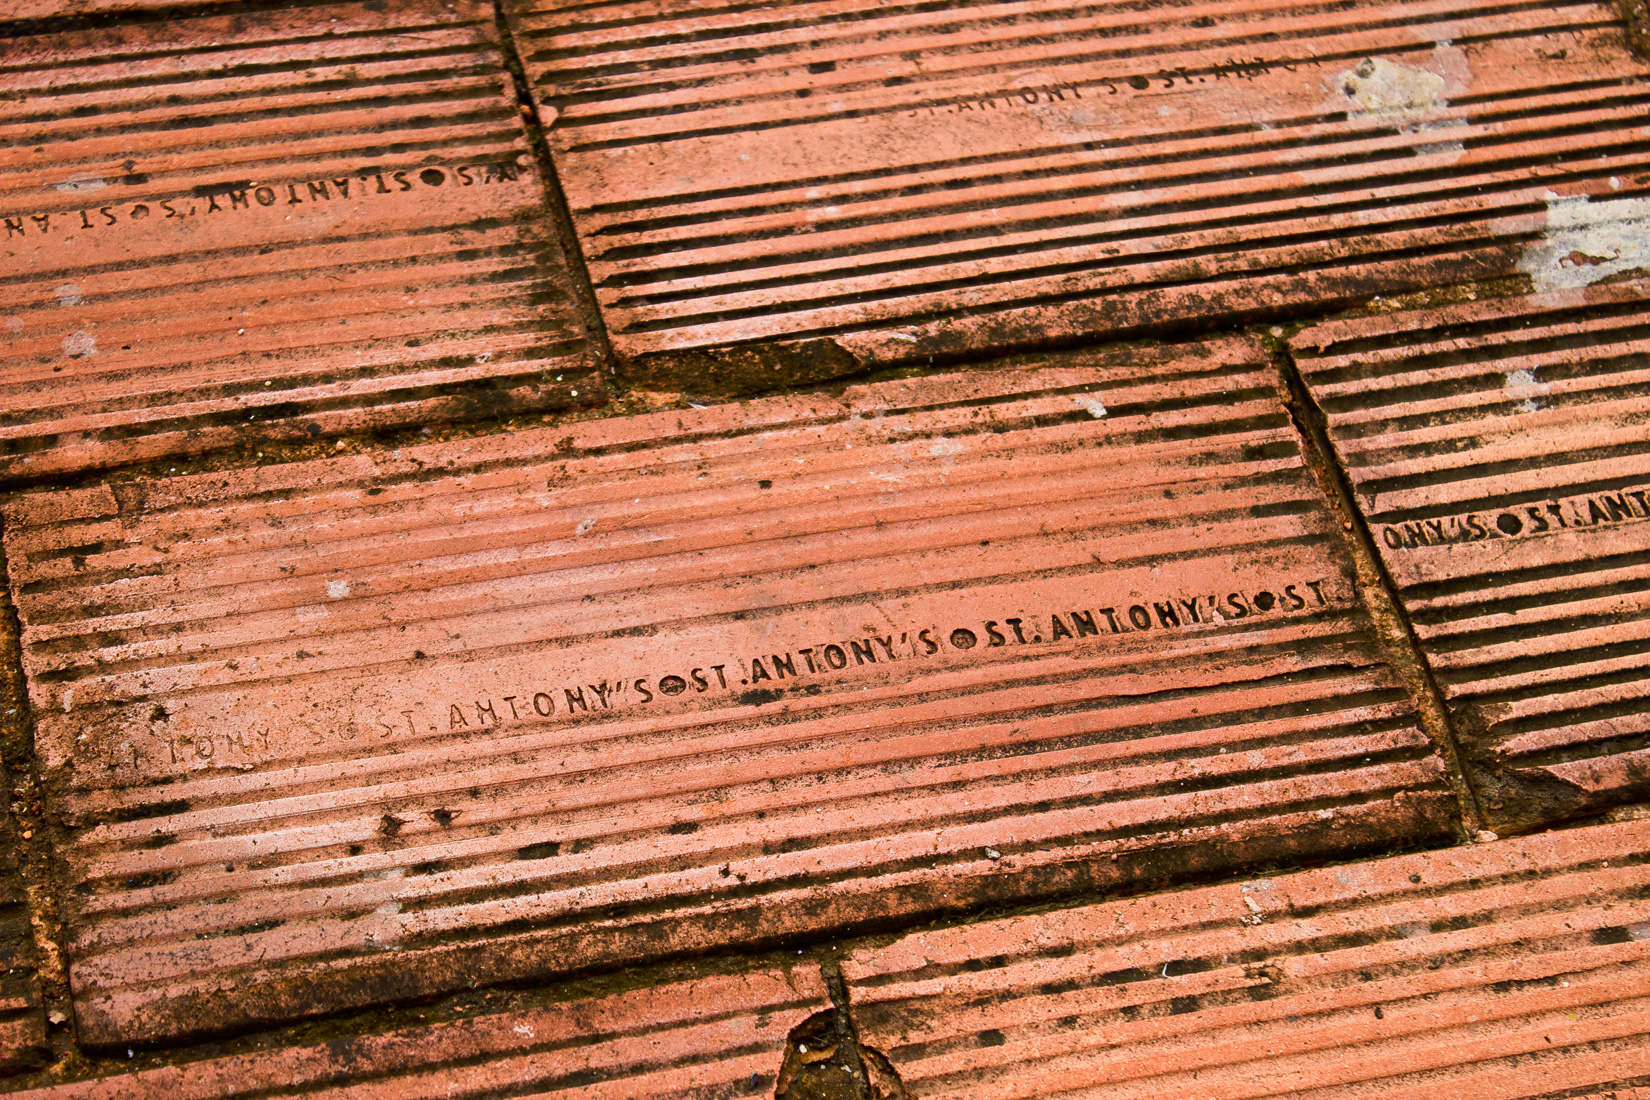 St. Anthonys bricks in Chennai Market, India